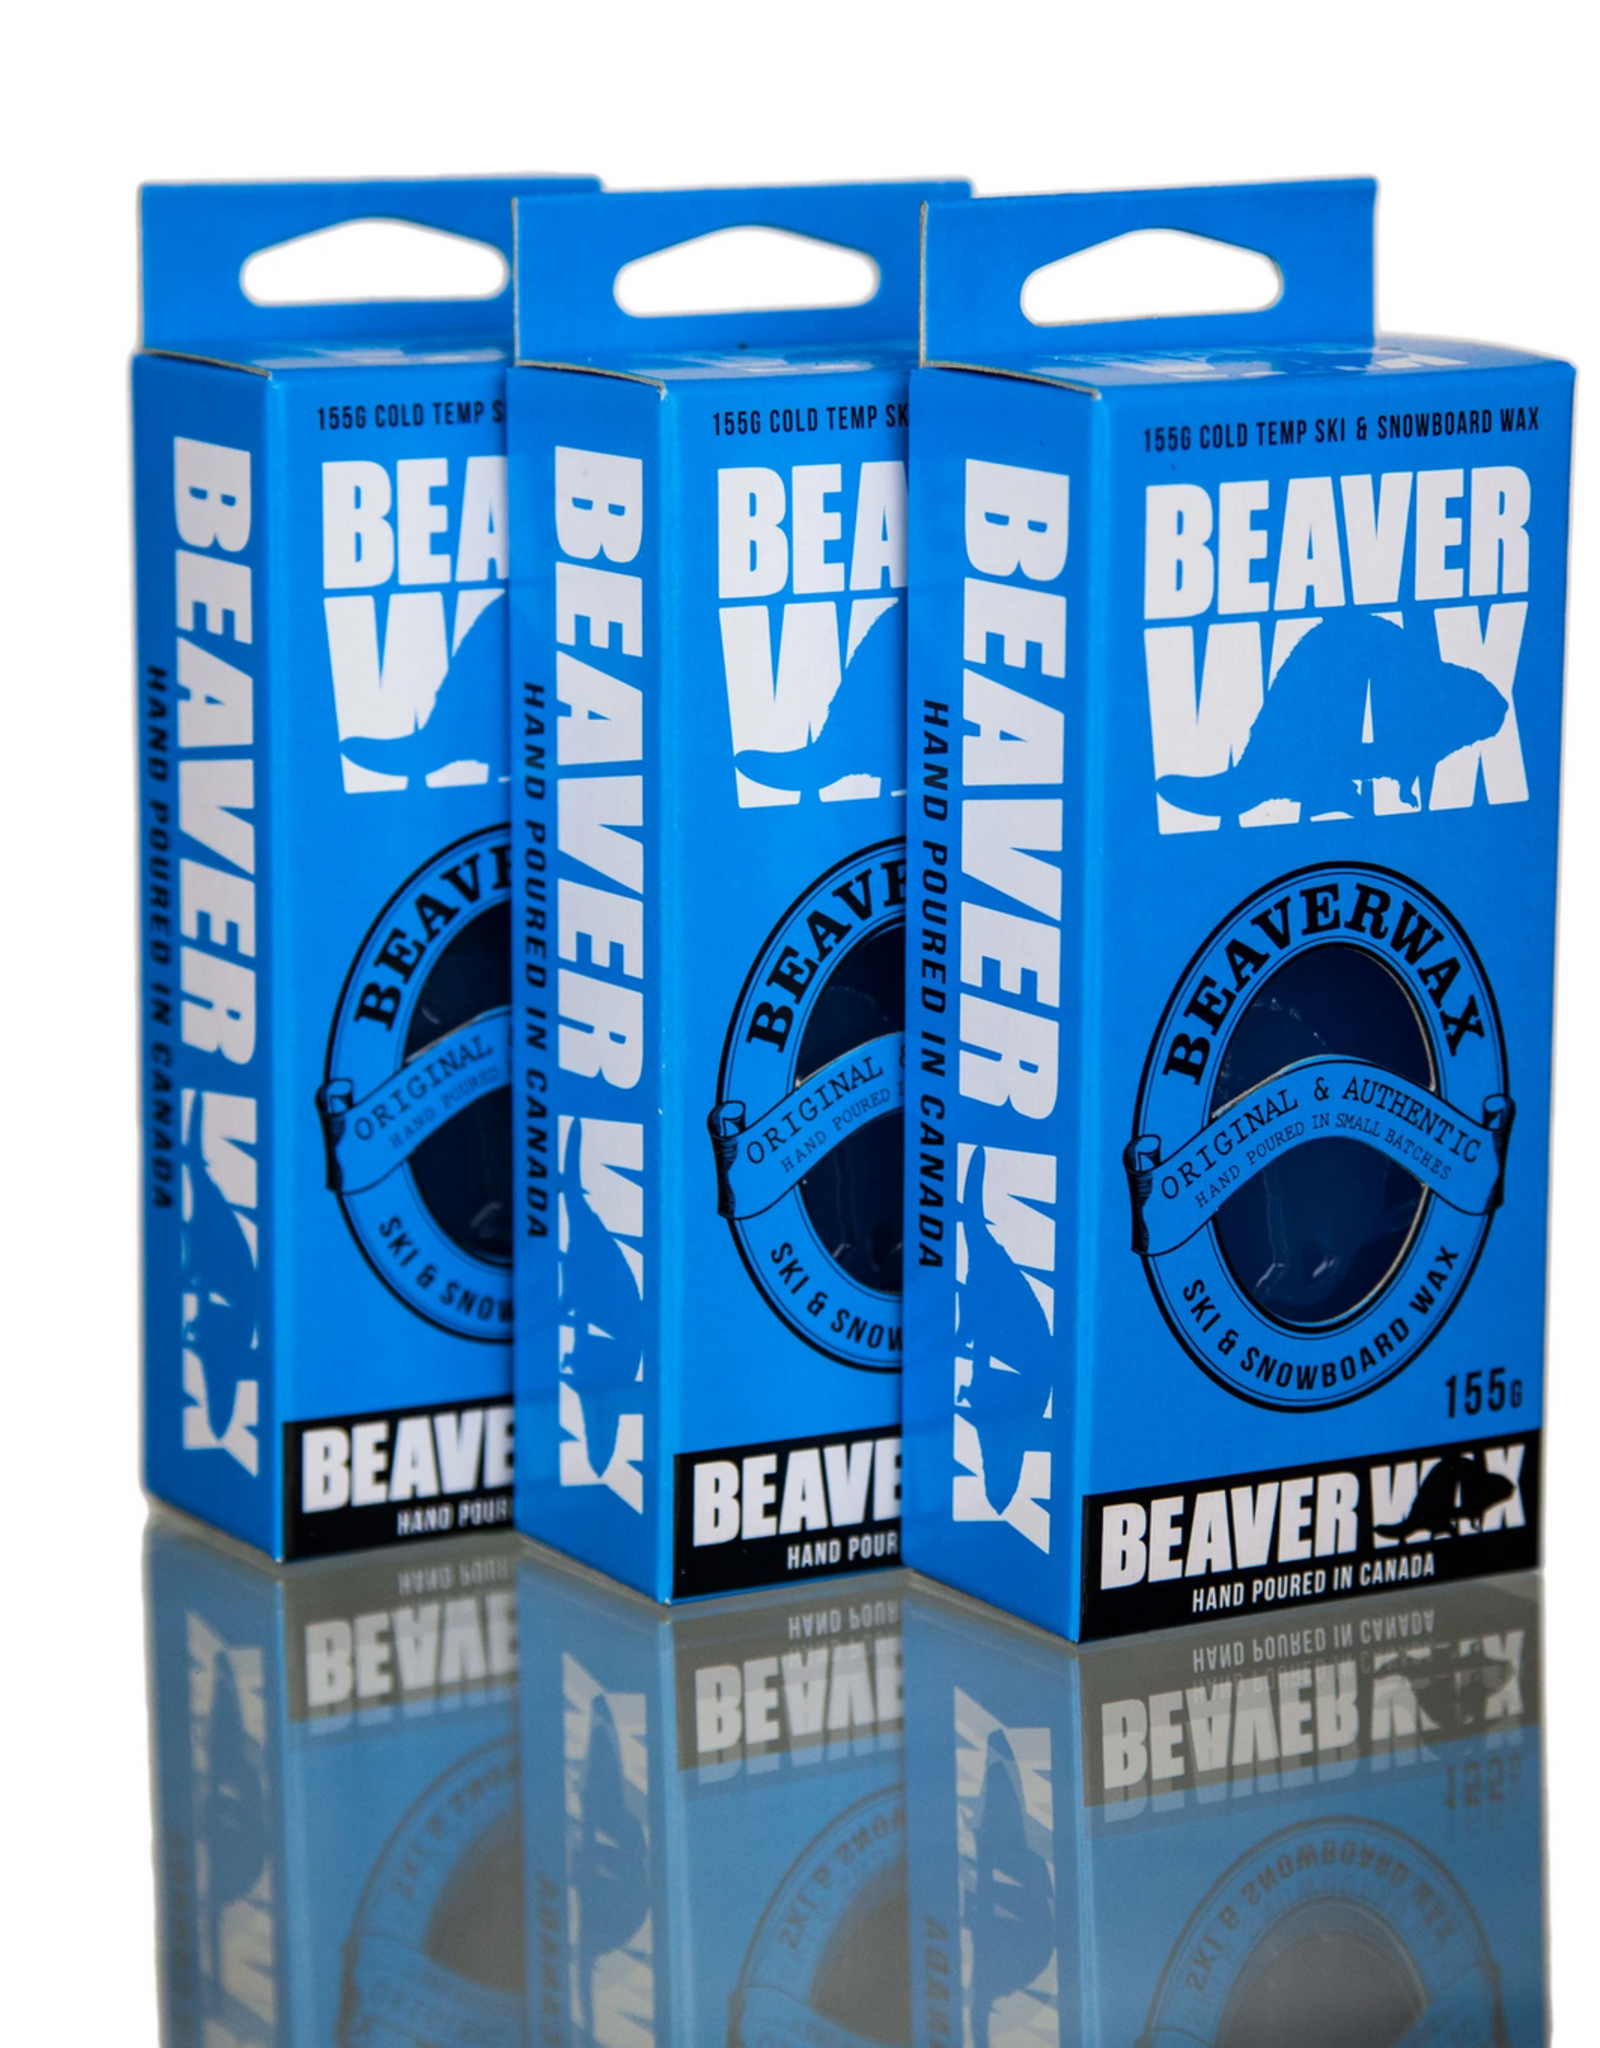 Beaver Wax Beaver Wax 155g Cold Temp Snow Wax